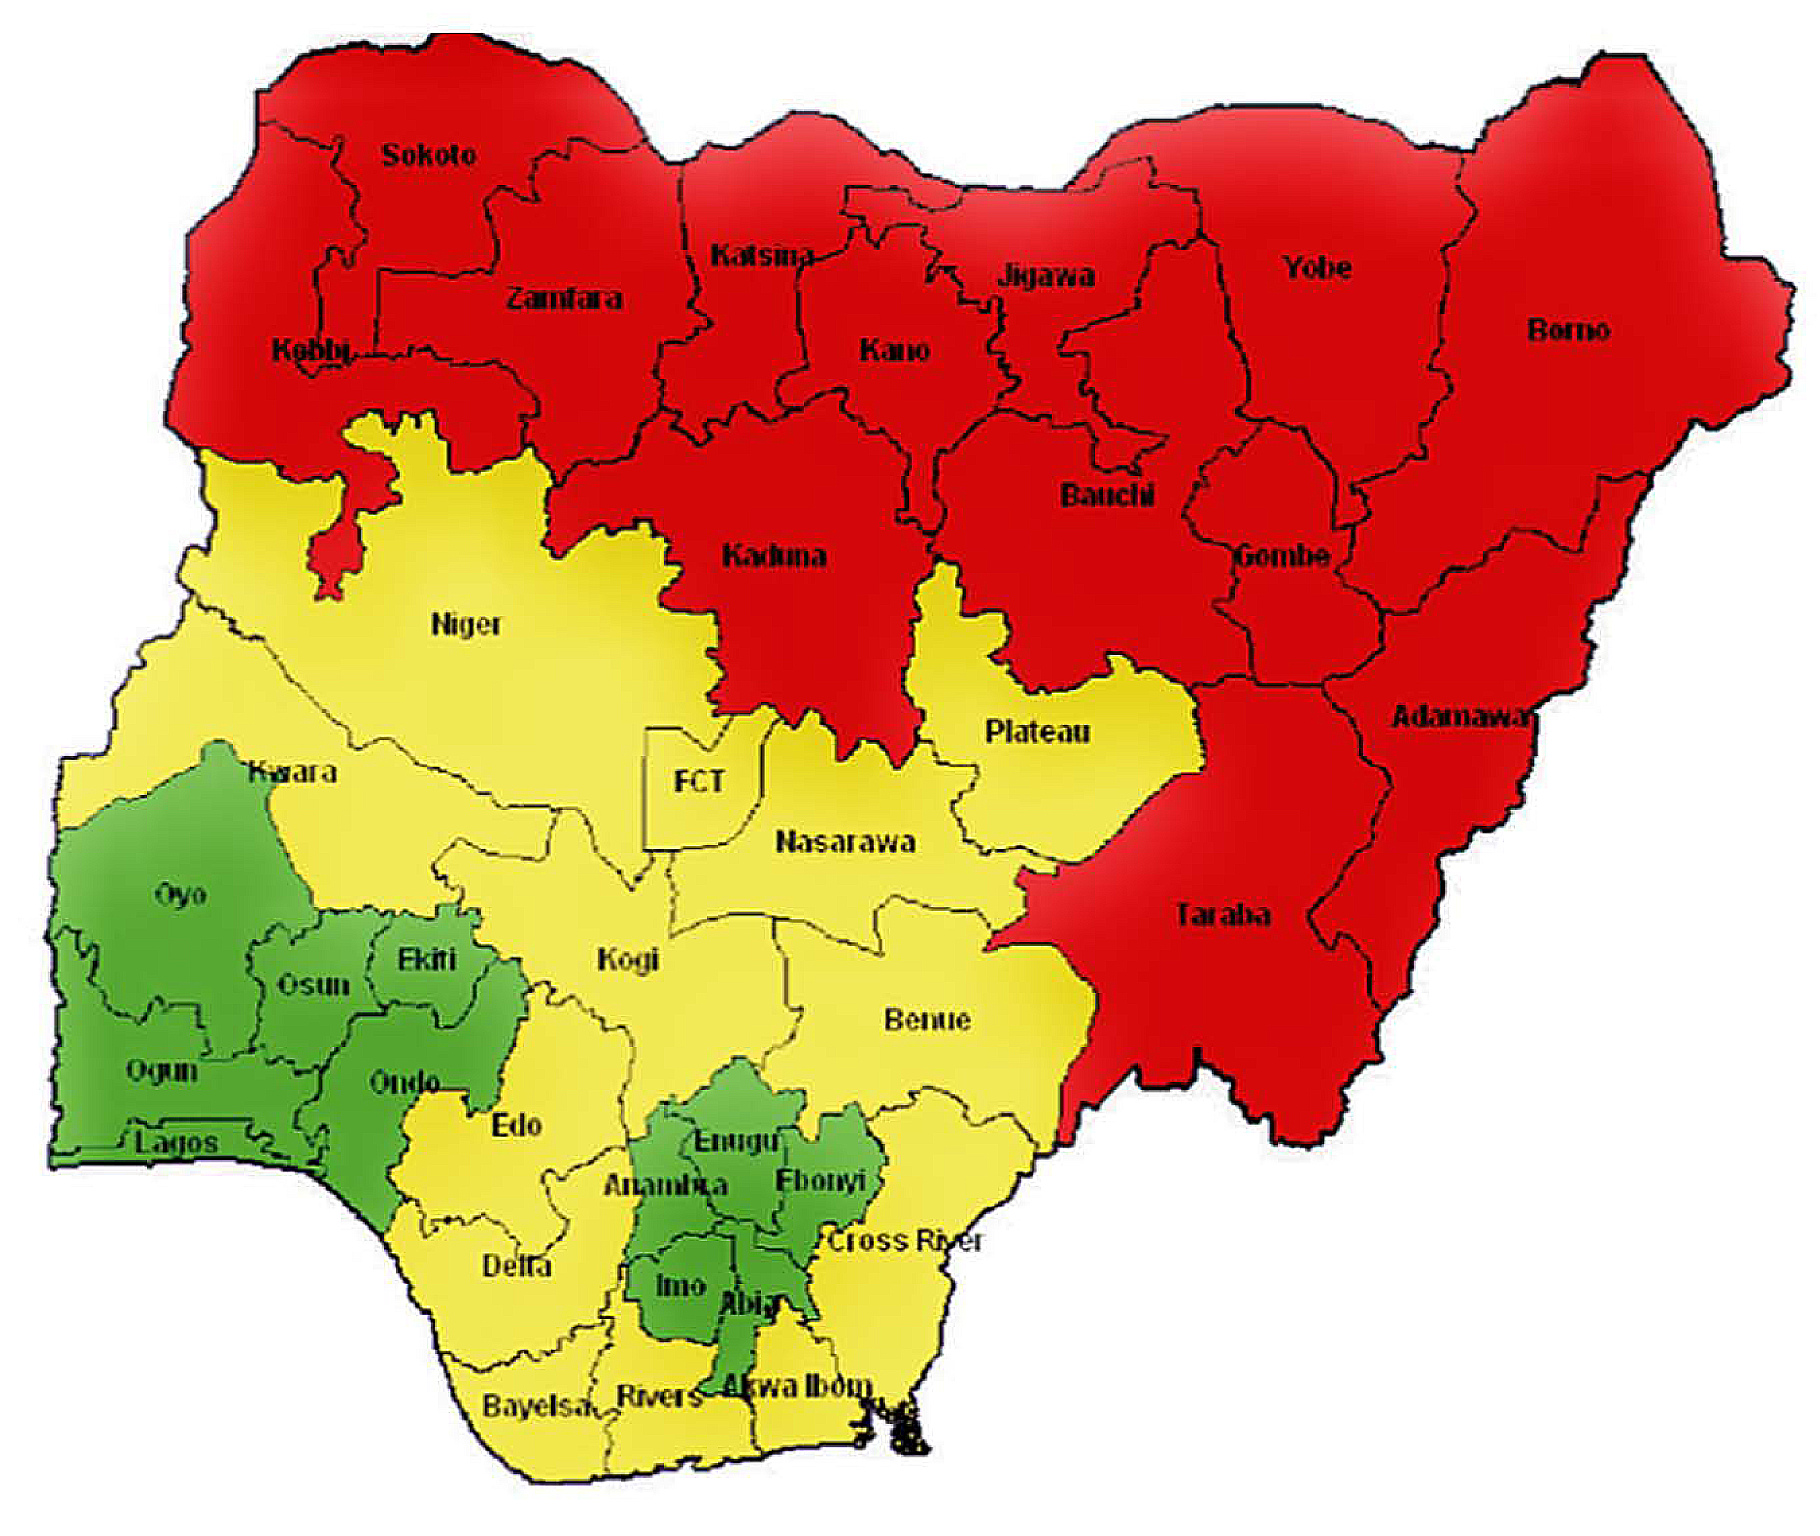 The states of Nigeria and their MMR categories.